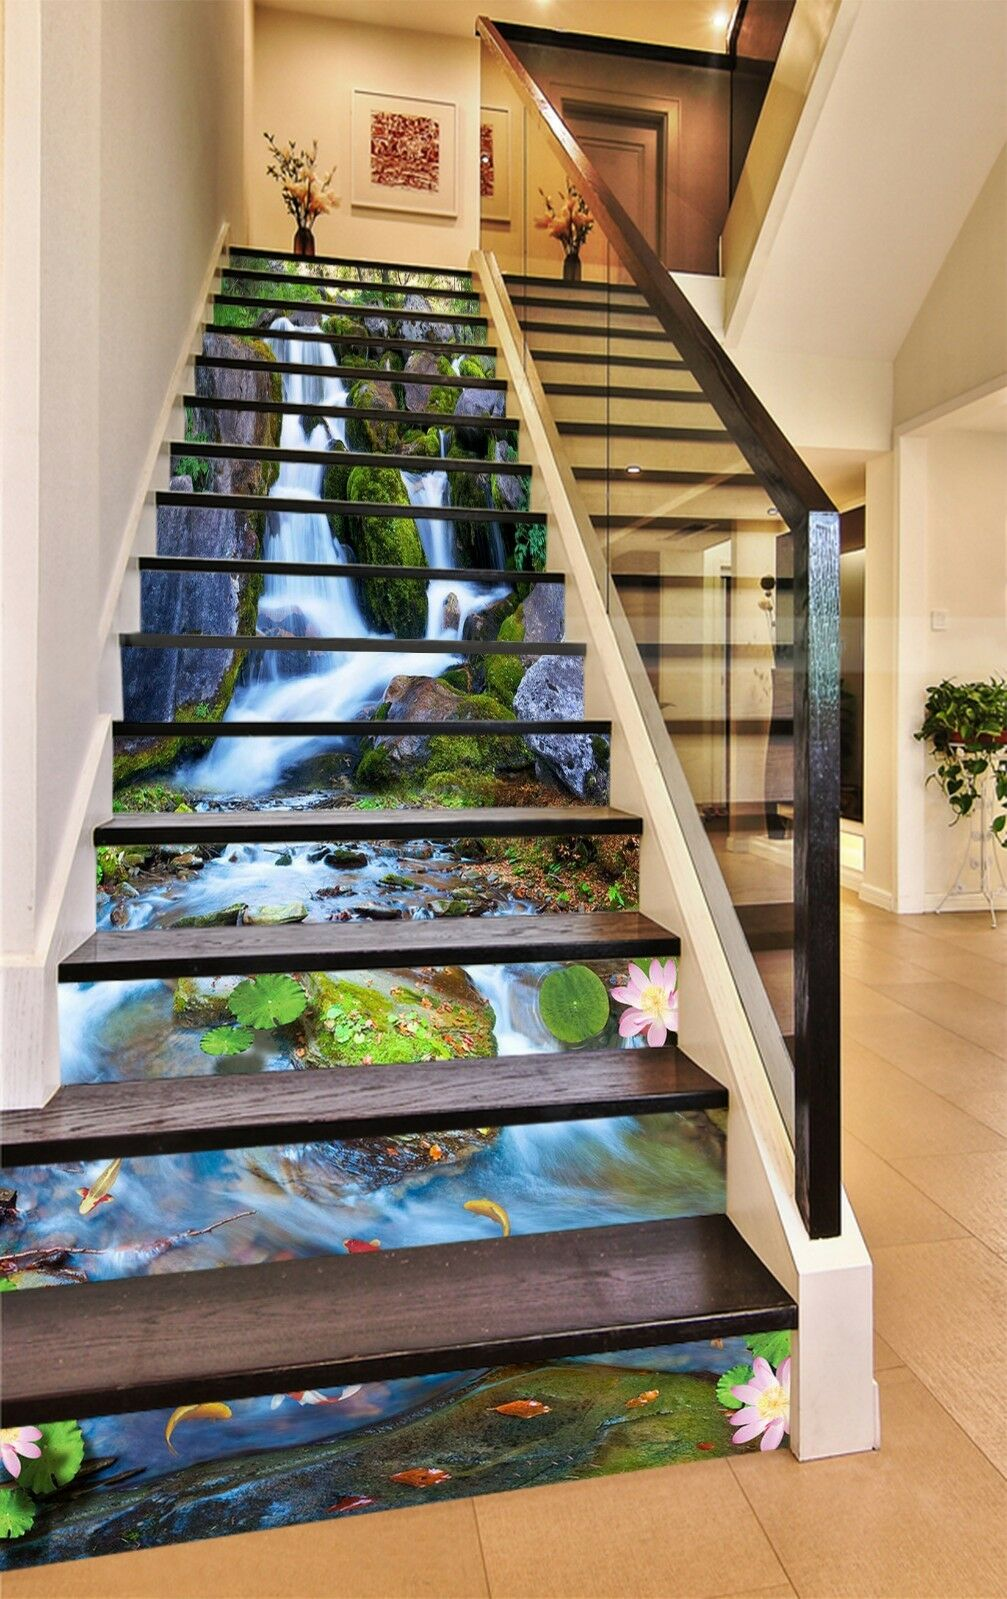 3D Waterfall Carp 9 Stair Risers Decoration Photo Mural Vinyl Decal Wallpaper CA